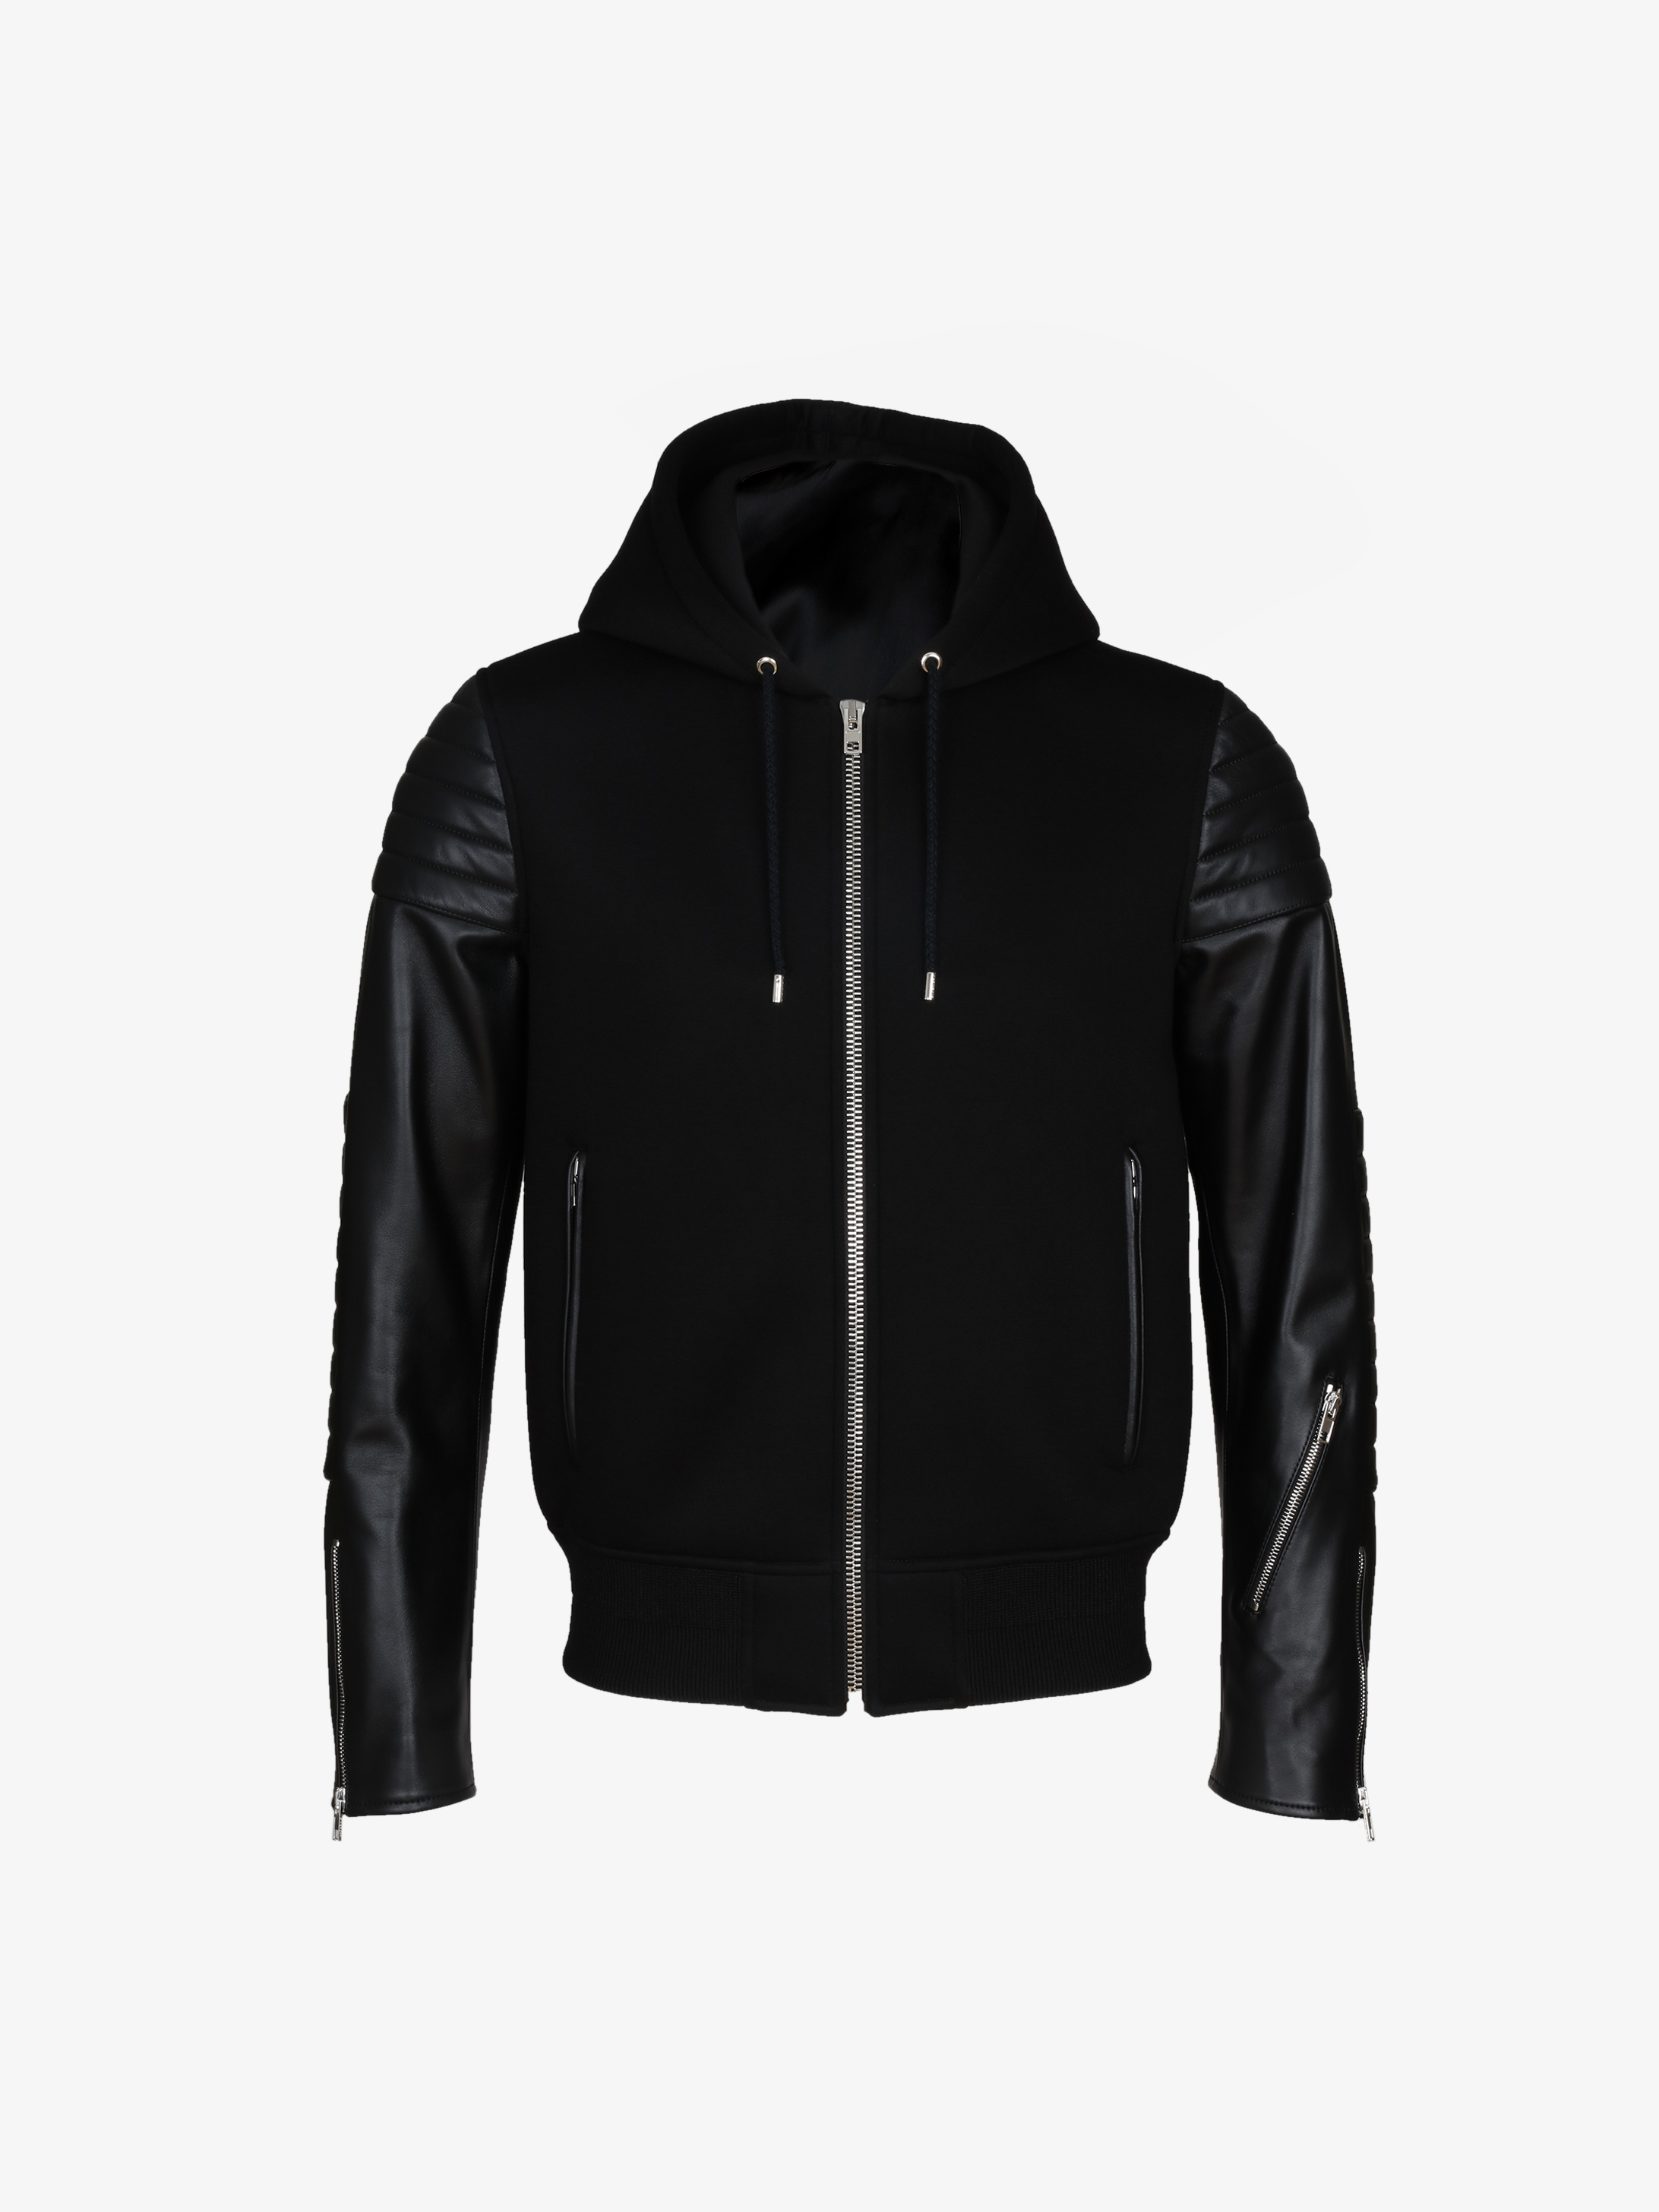 Neoprene and leather zipped hoodie